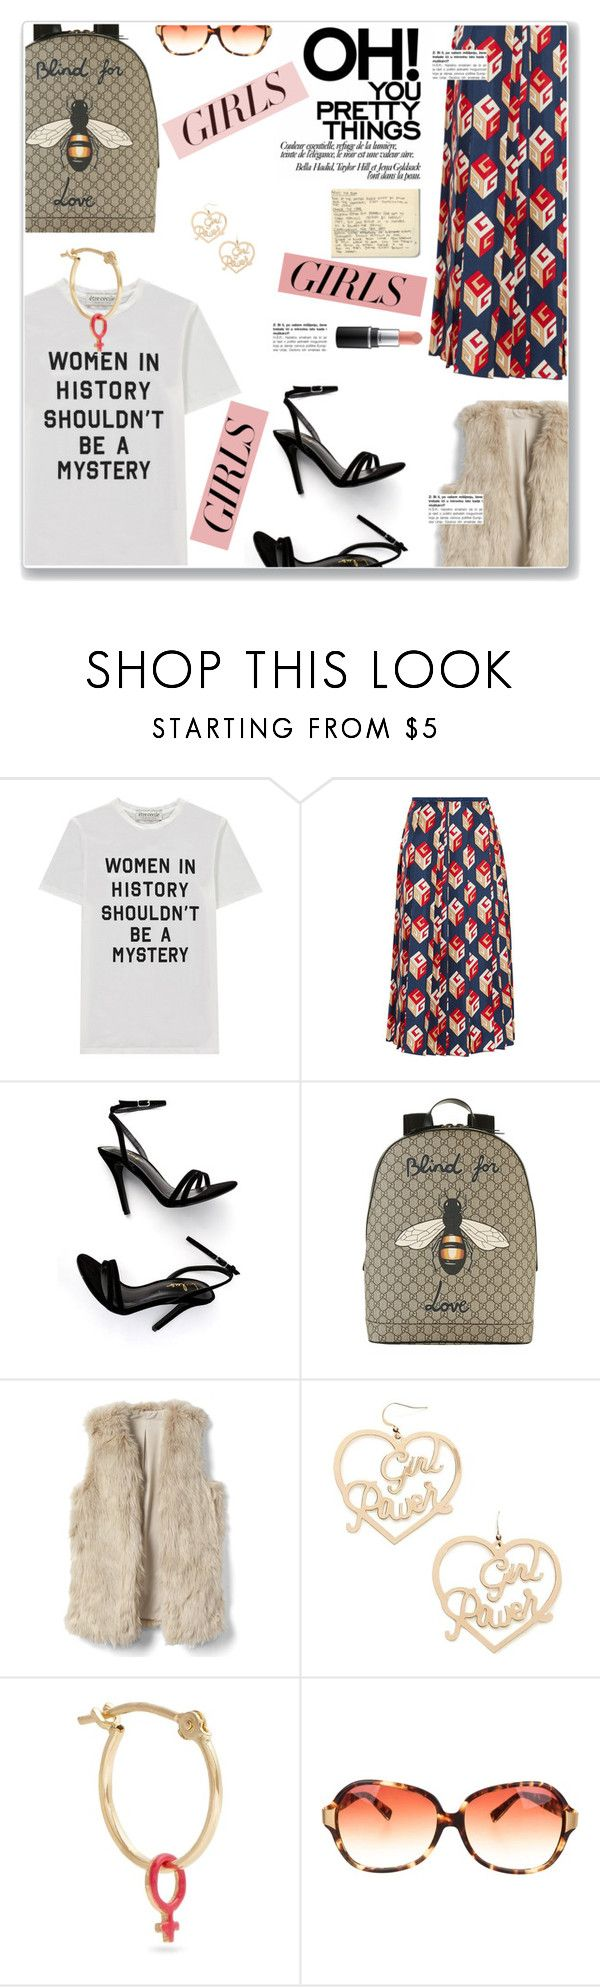 """""""Untitled #1642"""" by sibanesly ❤ liked on Polyvore featuring Être Cécile, Gucci, LULUS, Forever 21, Alison Lou, Oliver Peoples, Moleskine, womensHistoryMonth, pressforprogress and GirlPride"""